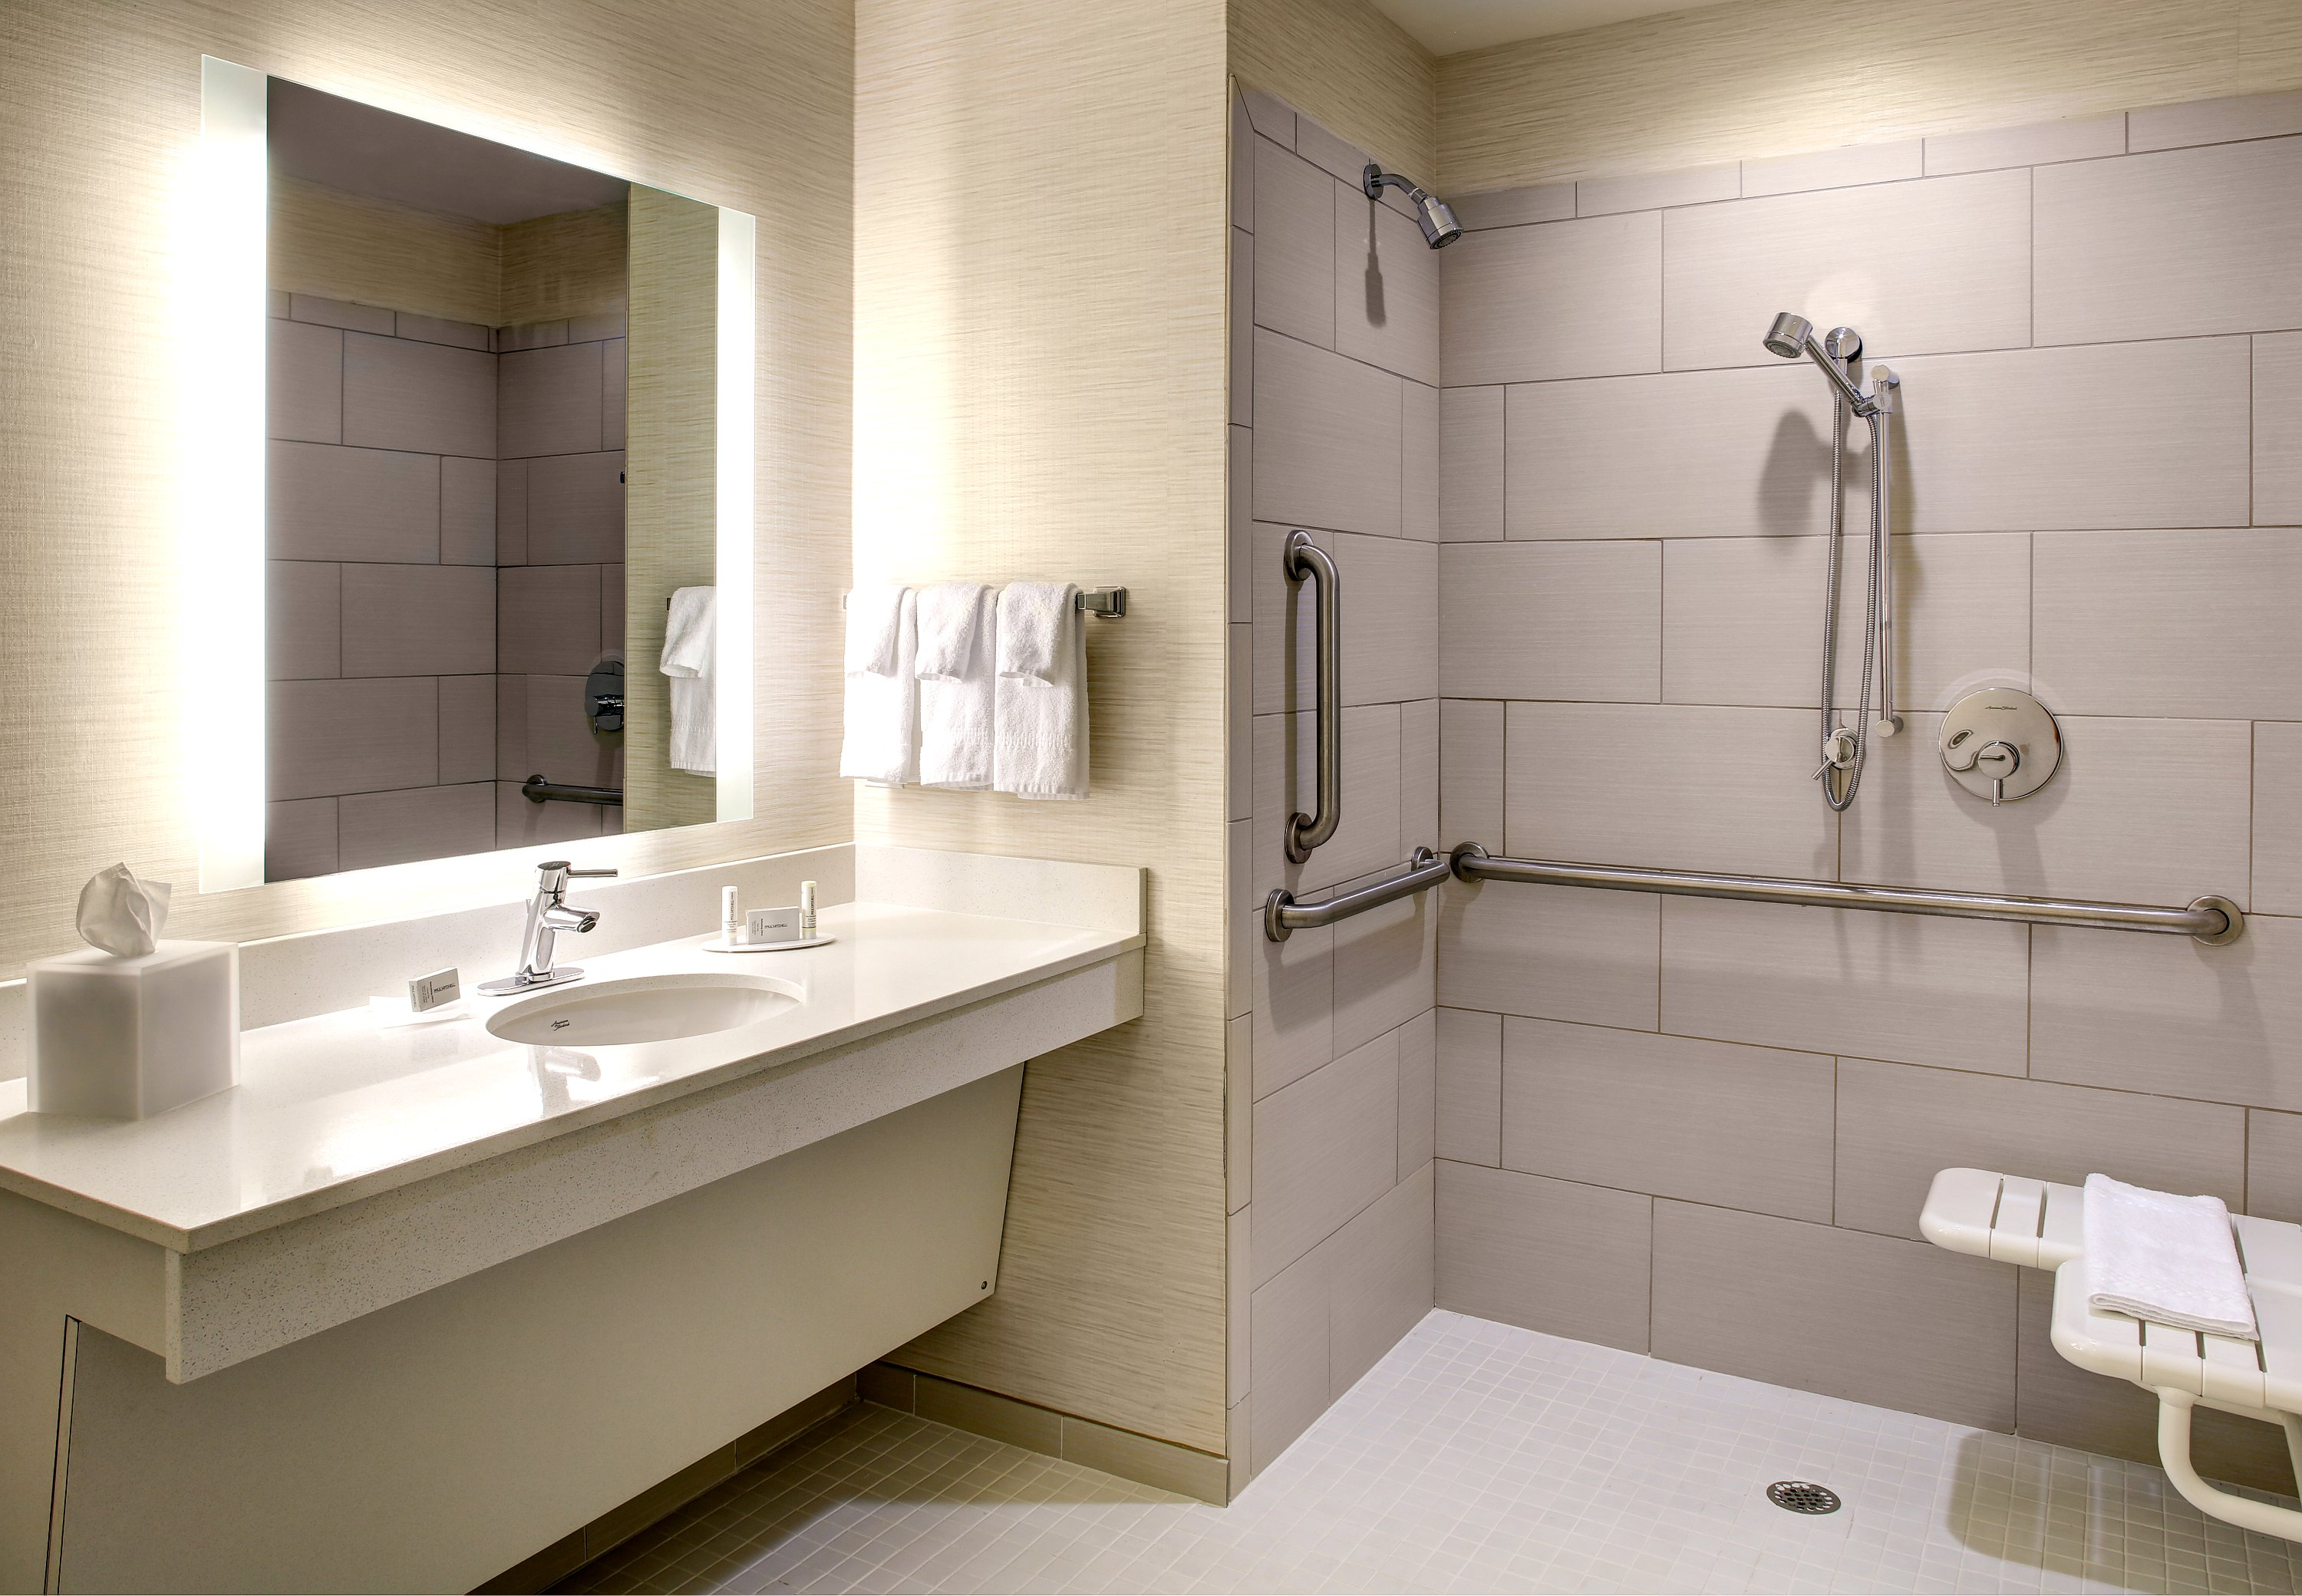 Fairfield Inn & Suites by Marriott Atlanta Stockbridge image 8